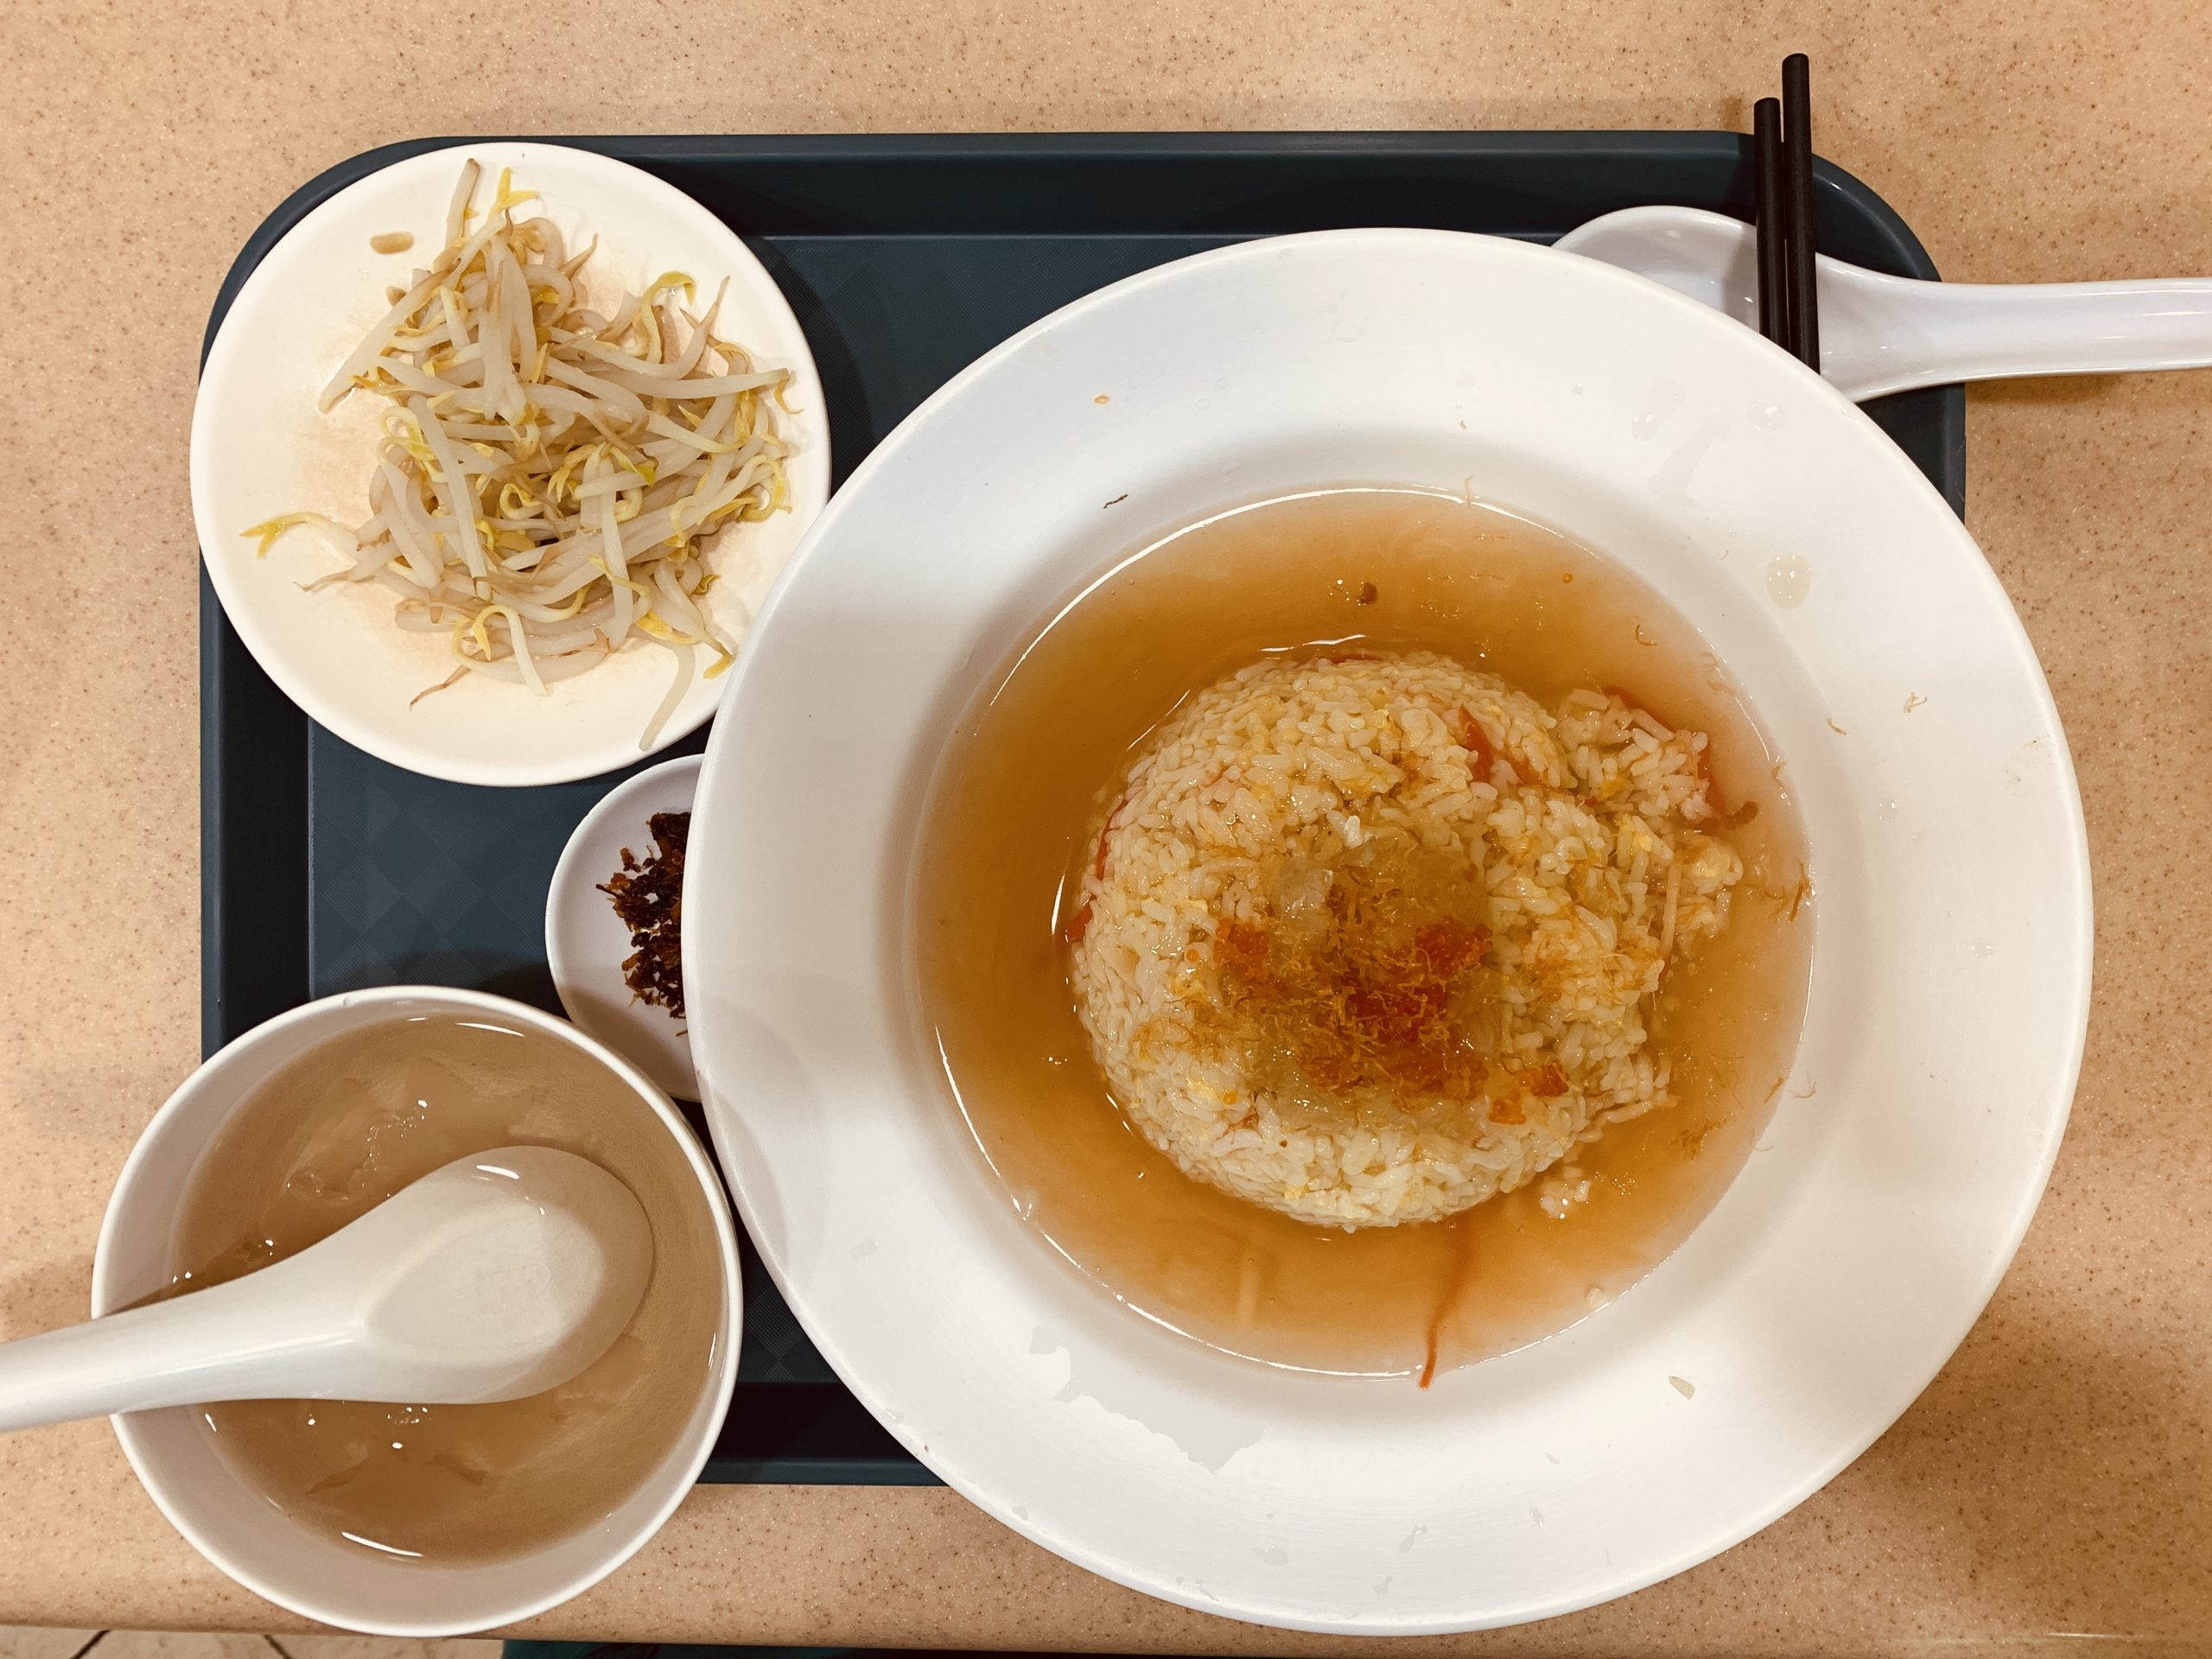 Rabbit Brand Seafood Delicacies - Set S2 Braised Shark's Fin with Fried Rice, Fish Roe & Bean Sprout